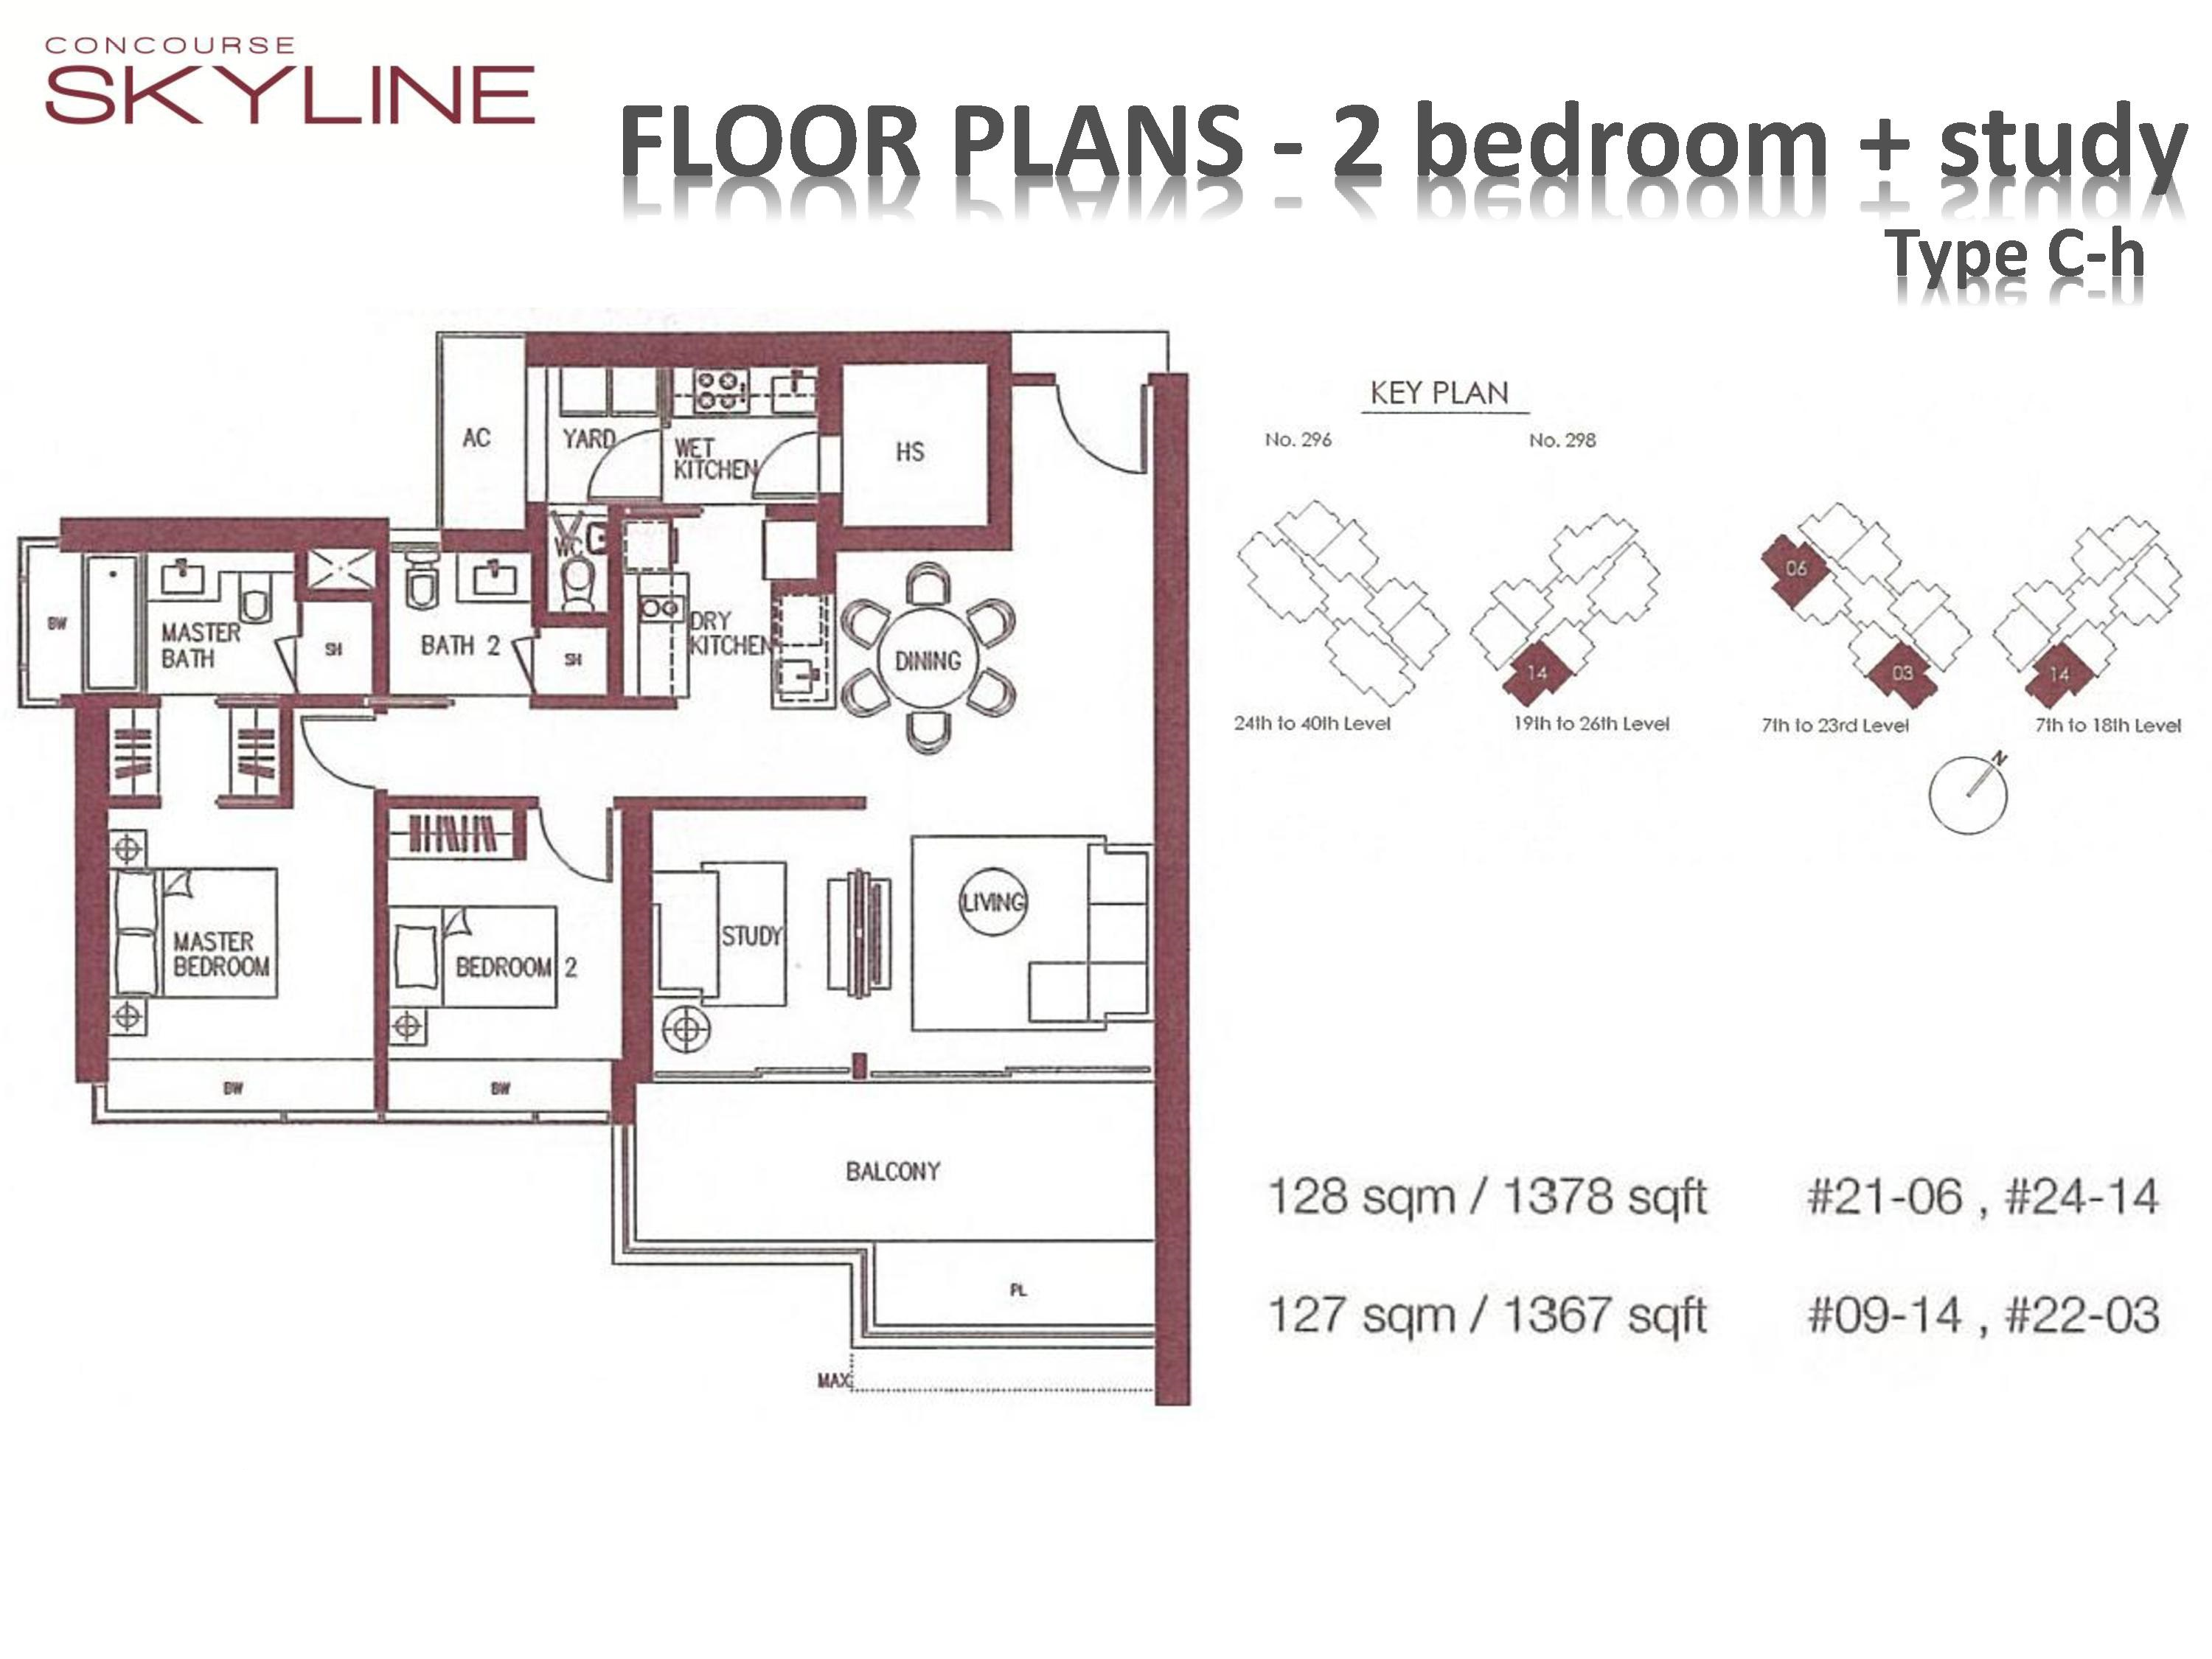 Concourse Skyline 2 Bedroom + Study Type C-h Floor Plans